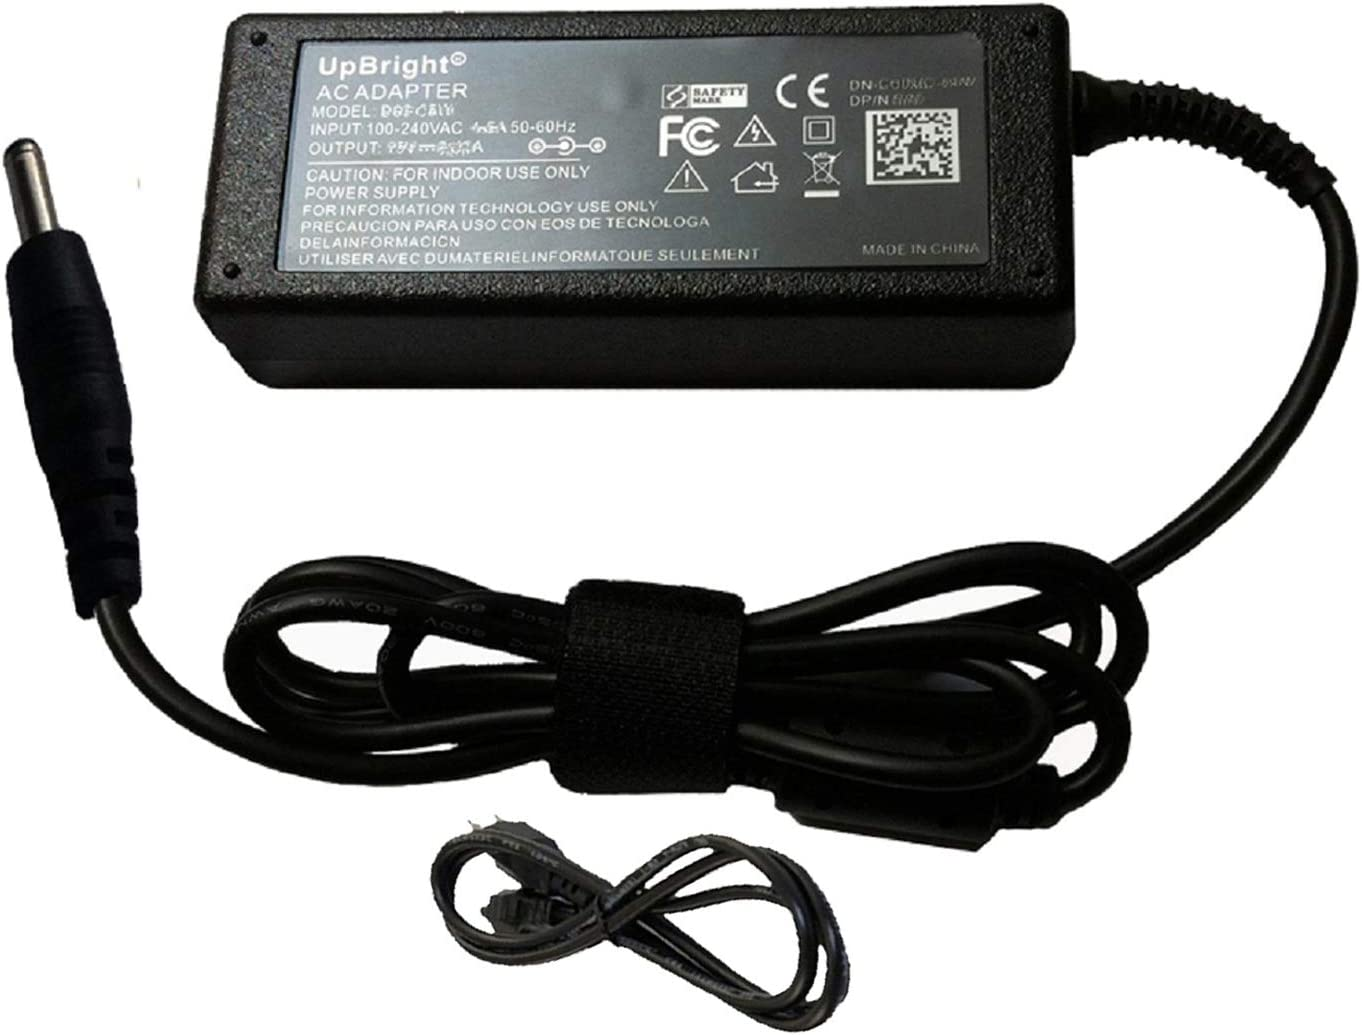 UpBright 65W AC/DC Adapter Compatible with Acer Aspire R 15 R15 R5-571T-59DC R5-571TG-78G6 NX.GCCAA.002 NX.GCFAA.001 R5-571T-57Z0 Touch-Screen Laptop Power Supply Cord Cable PS Battery Charger PSU